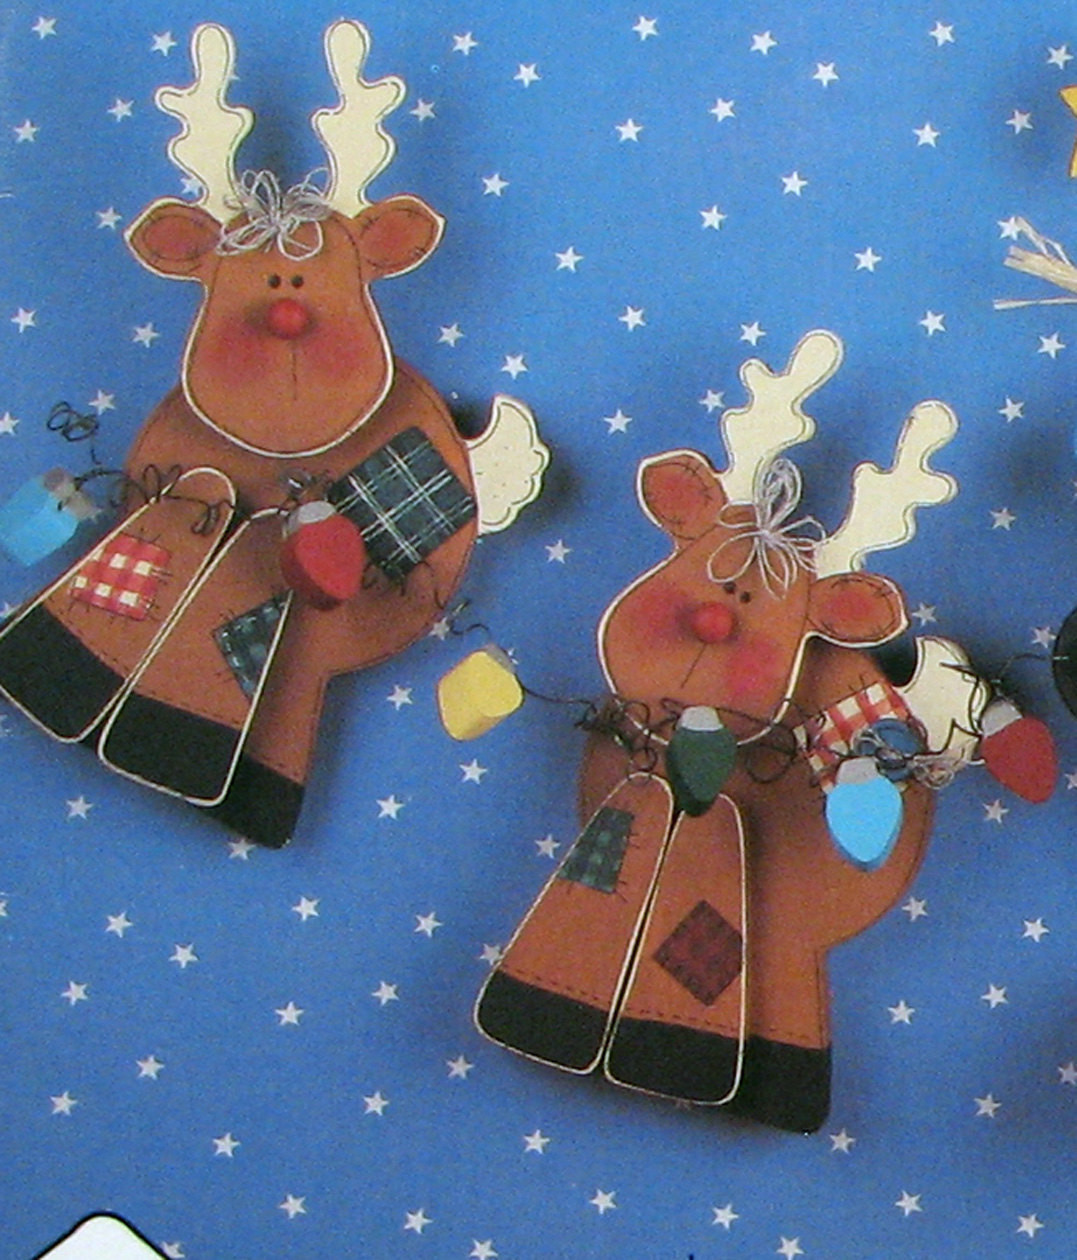 Best ideas about Christmas Wood Craft Projects . Save or Pin Christmas Wood Craft Pattern Reindeer Now.